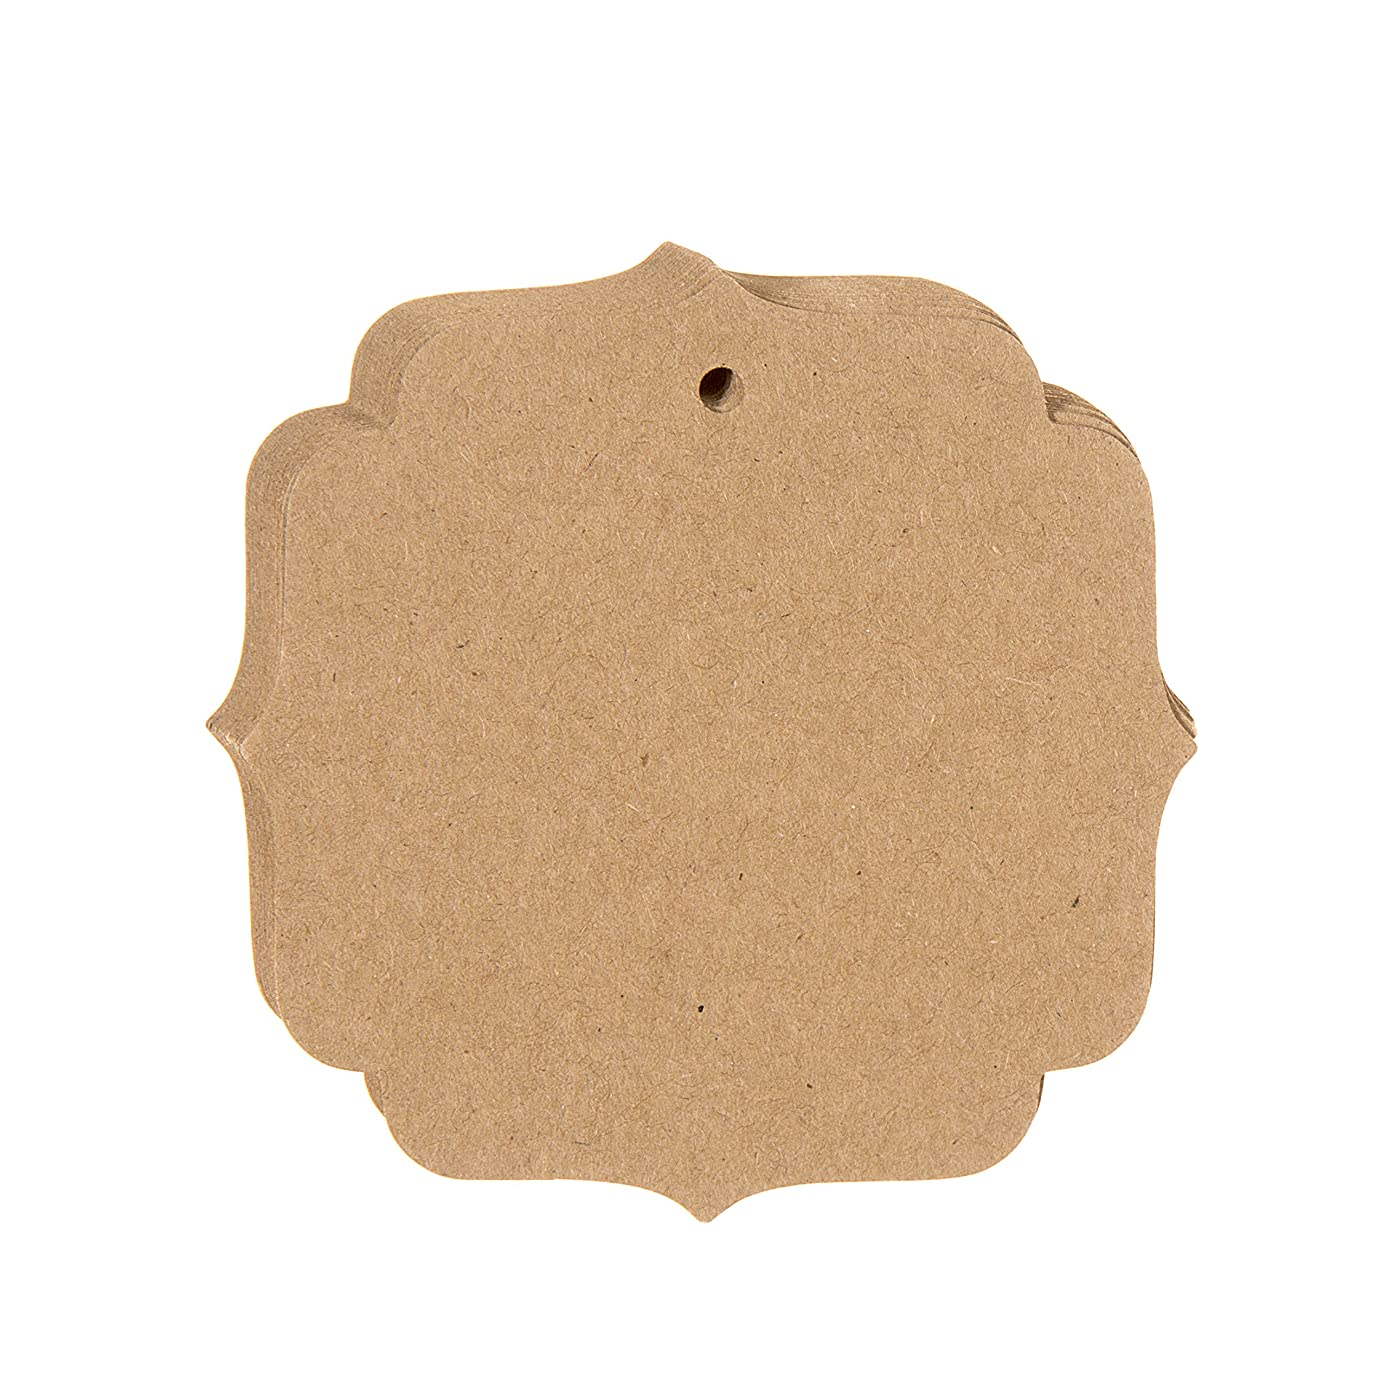 Darice Shield Shaped Paper Tags - 3 x 3 inches - Natural Kraft, 20 Piece